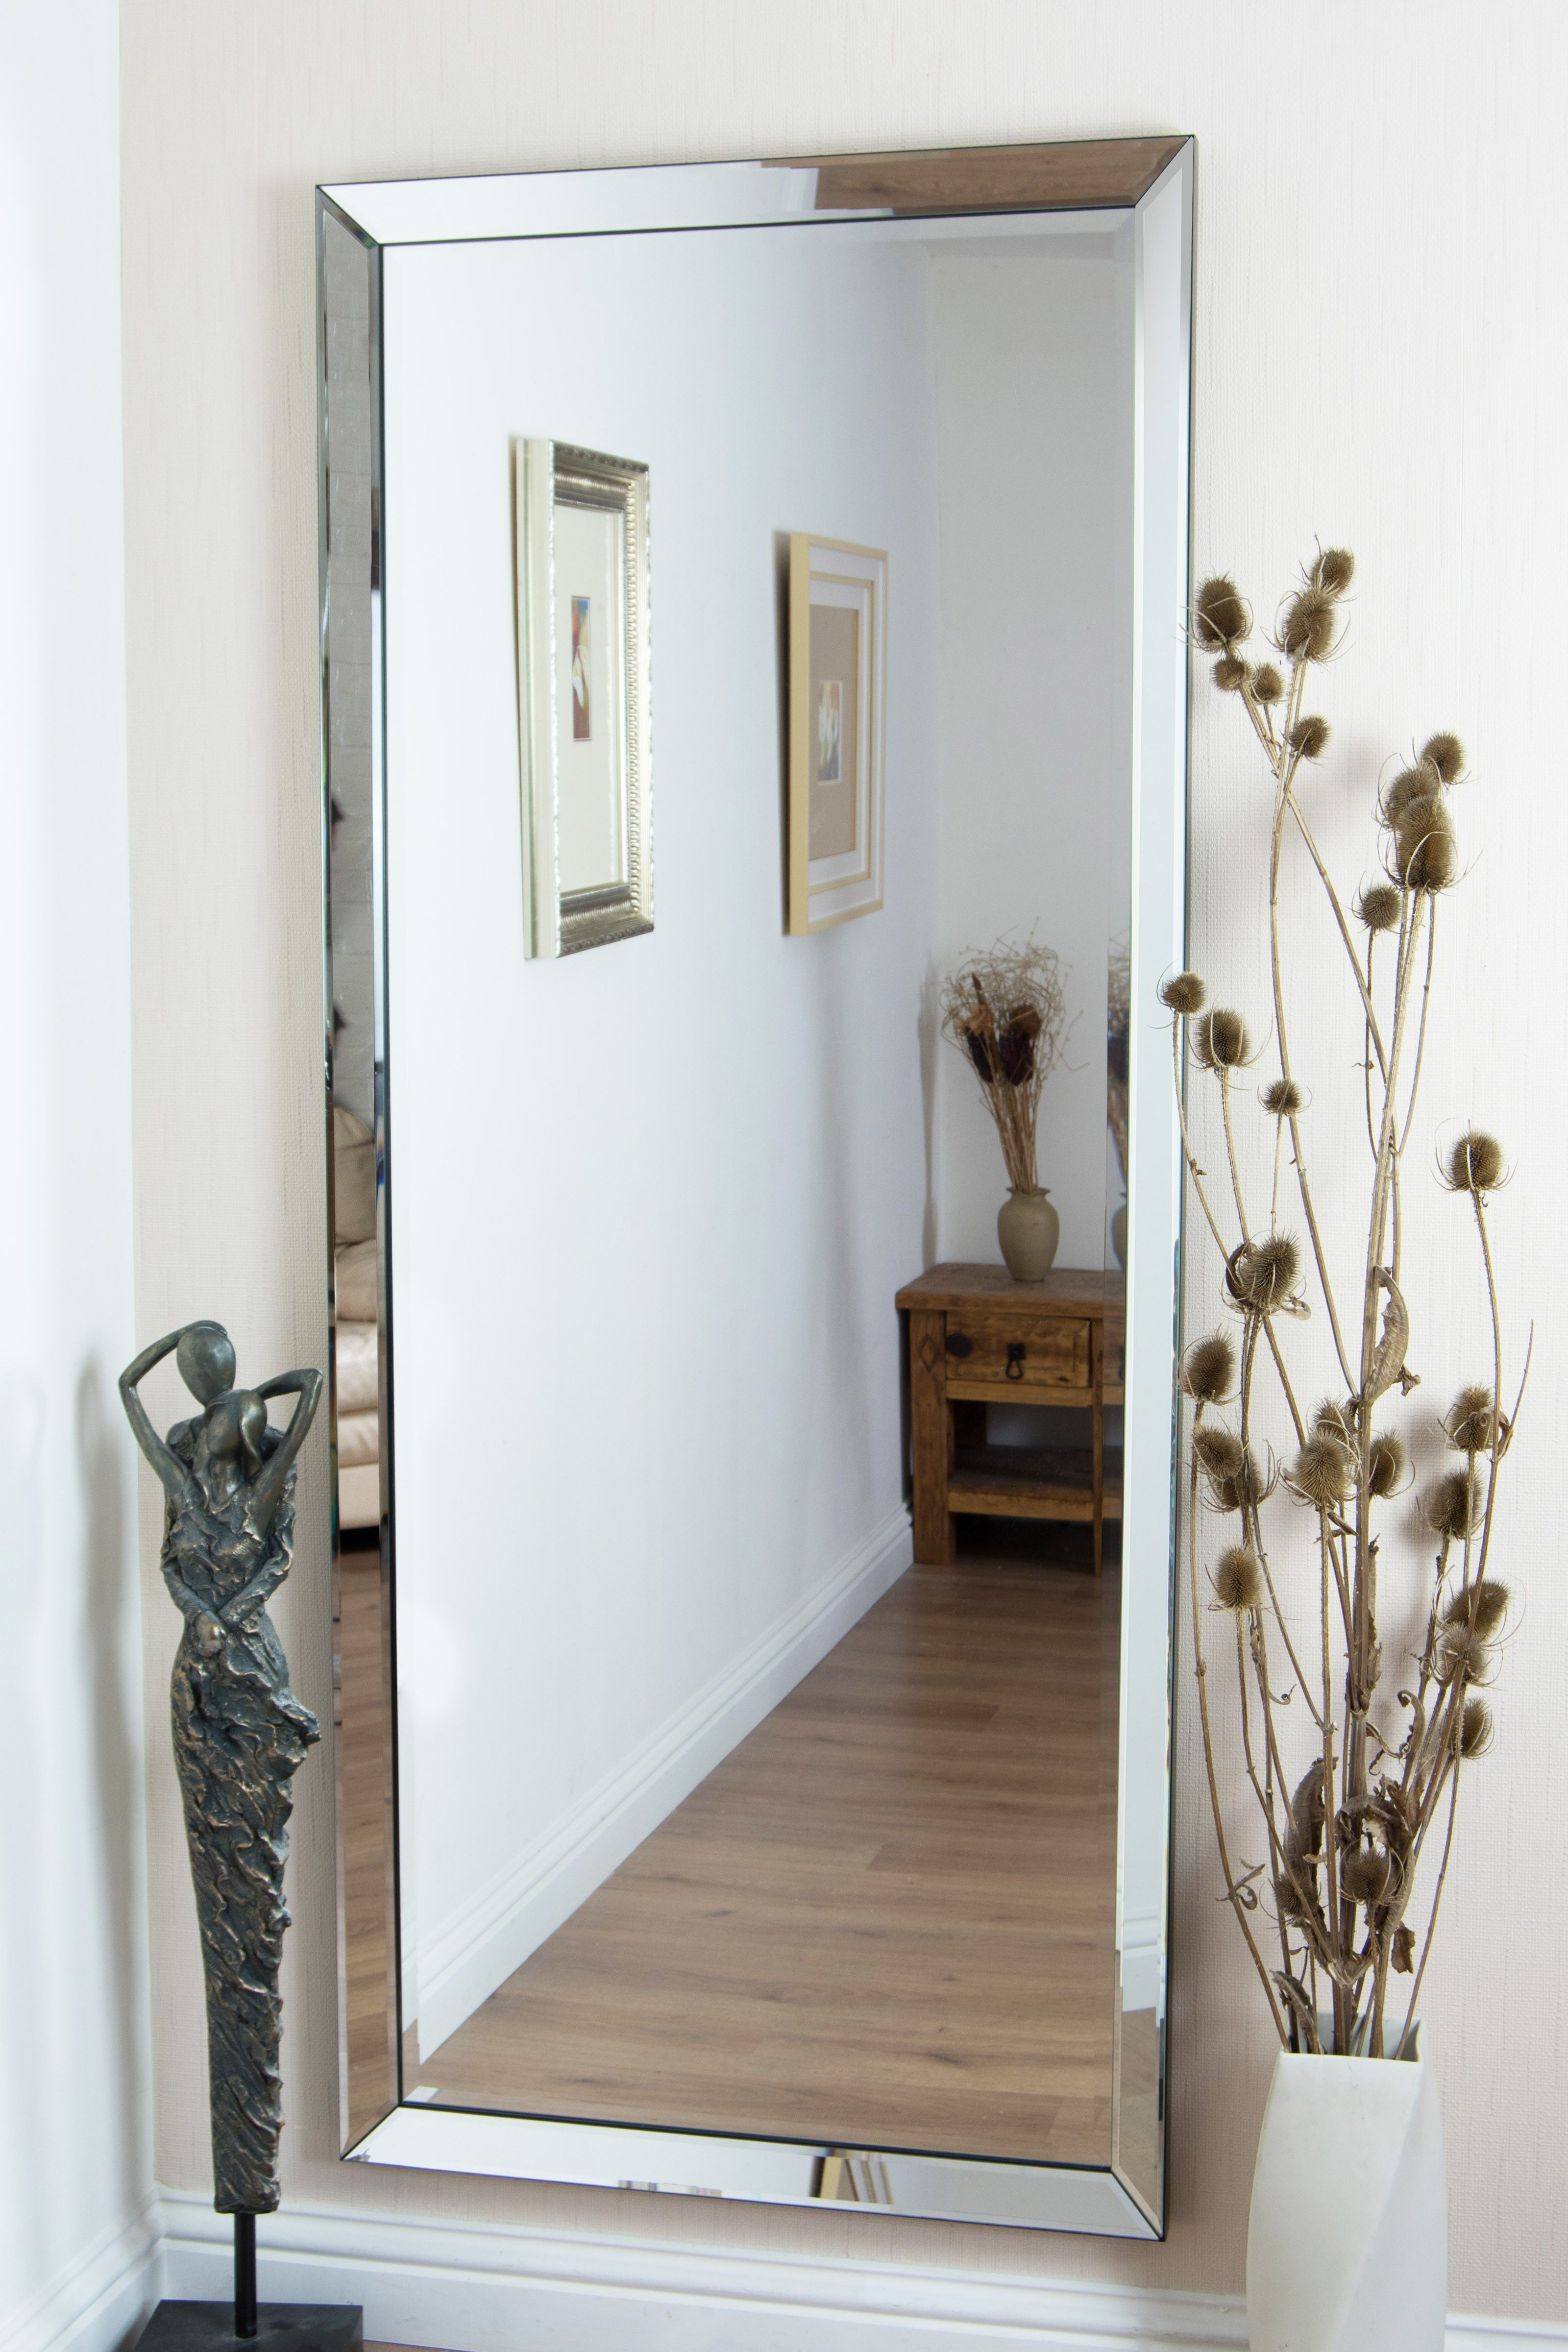 Long Rectangular Wall Mirrors Intended For Famous Large Rectangular Mirrors For Walls (View 10 of 20)